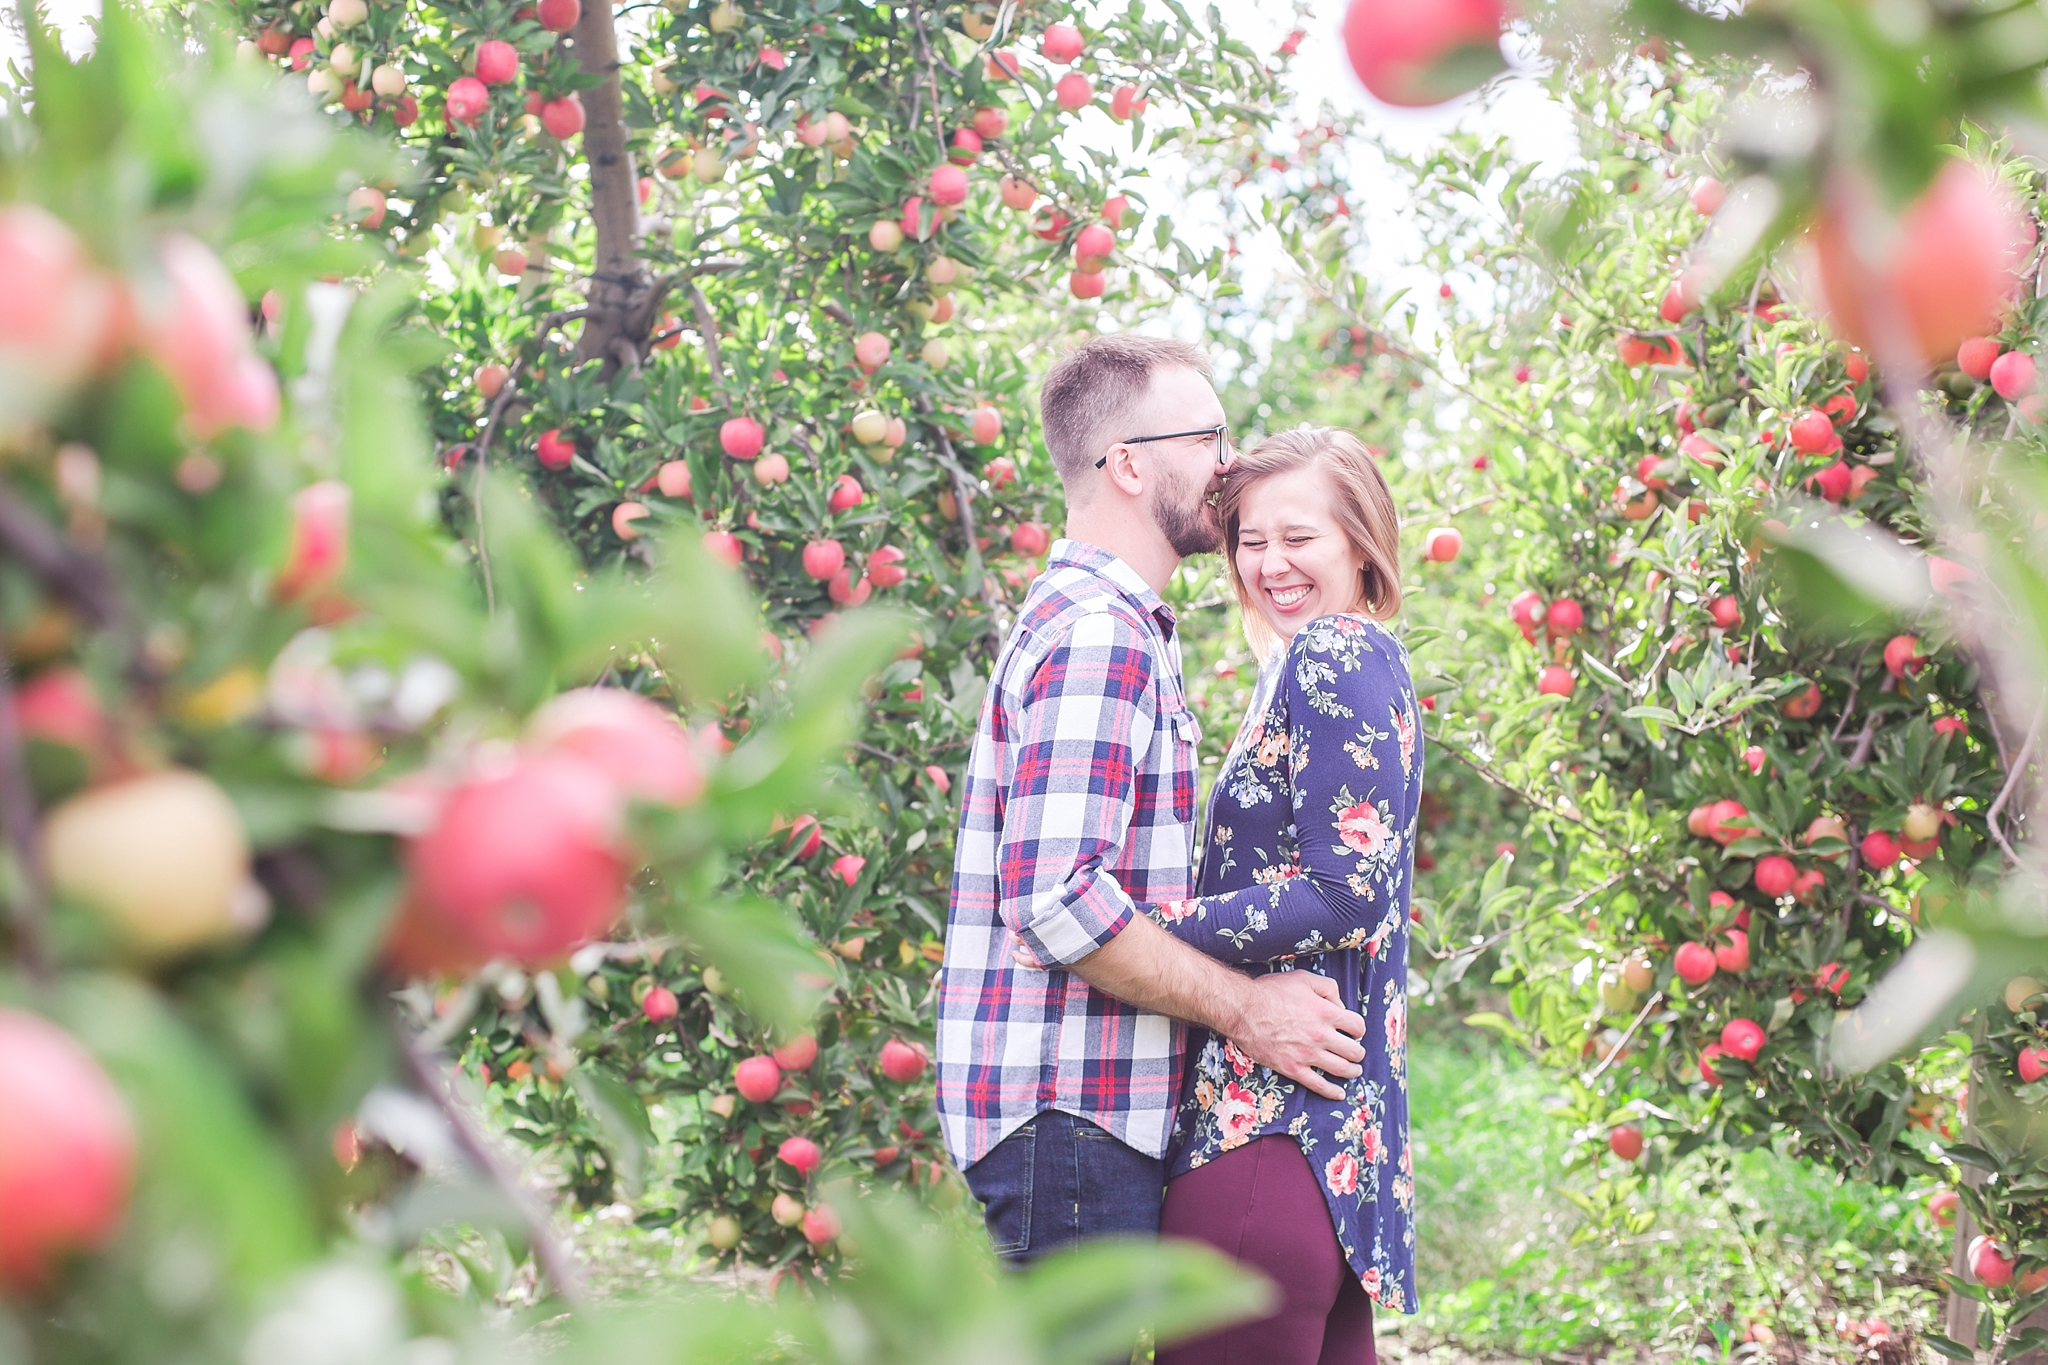 playful-fall-engagement-photos-at-hy's-cider-mill-ochard-in-bruce-township-michigan-by-courtney-carolyn-photography_0001.jpg